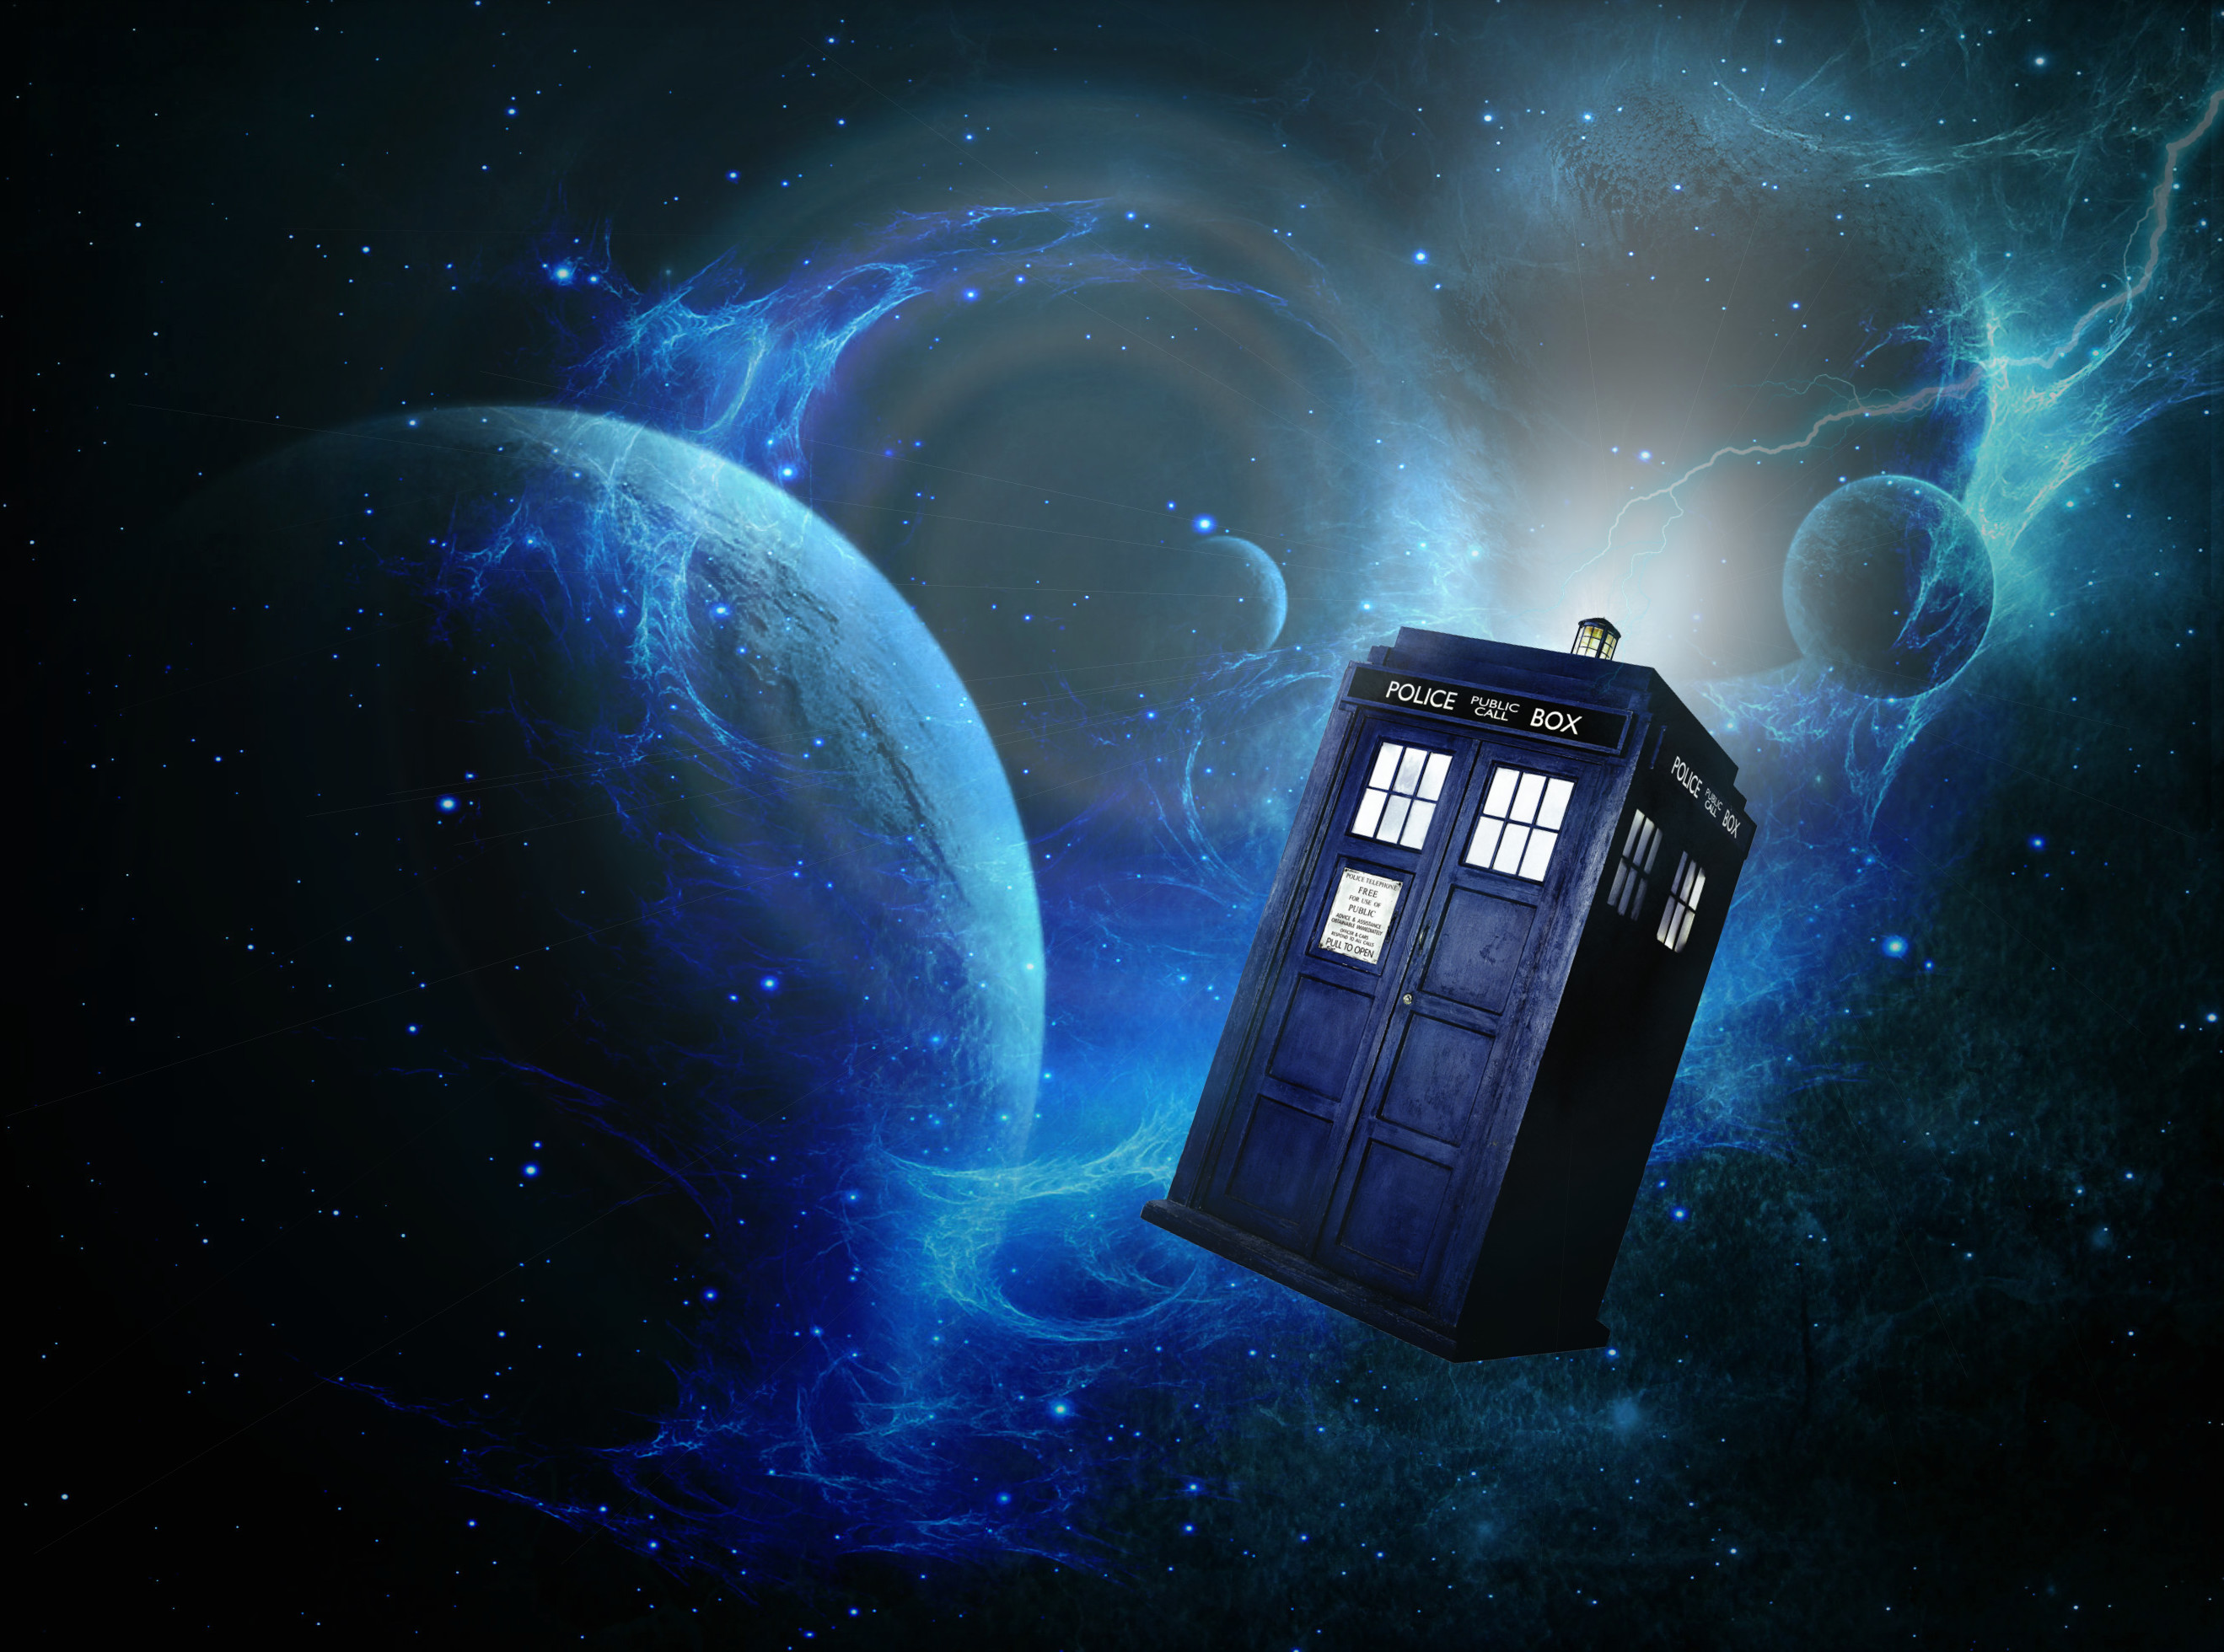 Doctor Who Wallpaper Tardis In Space (1)